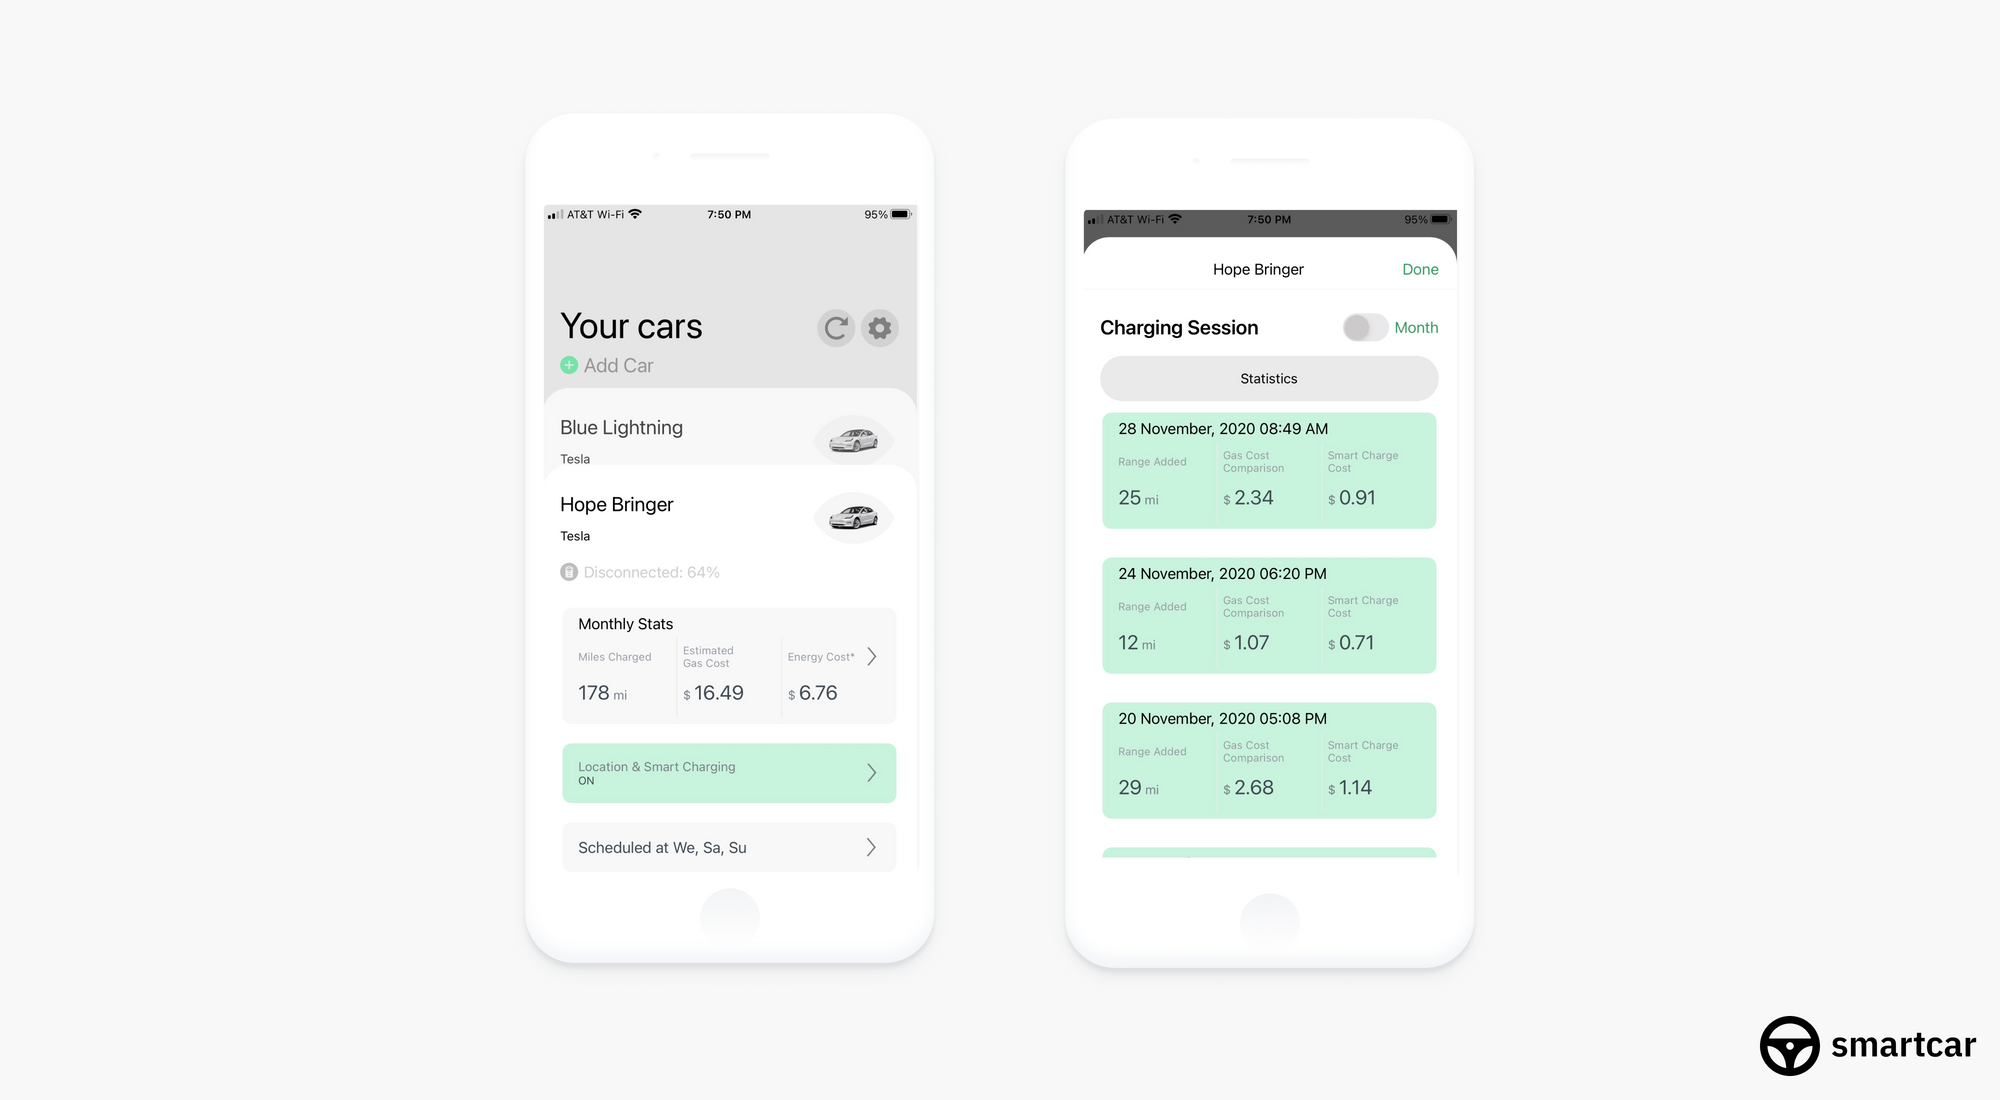 Two smartphone screens showing an overview of the user's Tesla with monthly charging stats on the left and information regarding past charging sessions on the right.